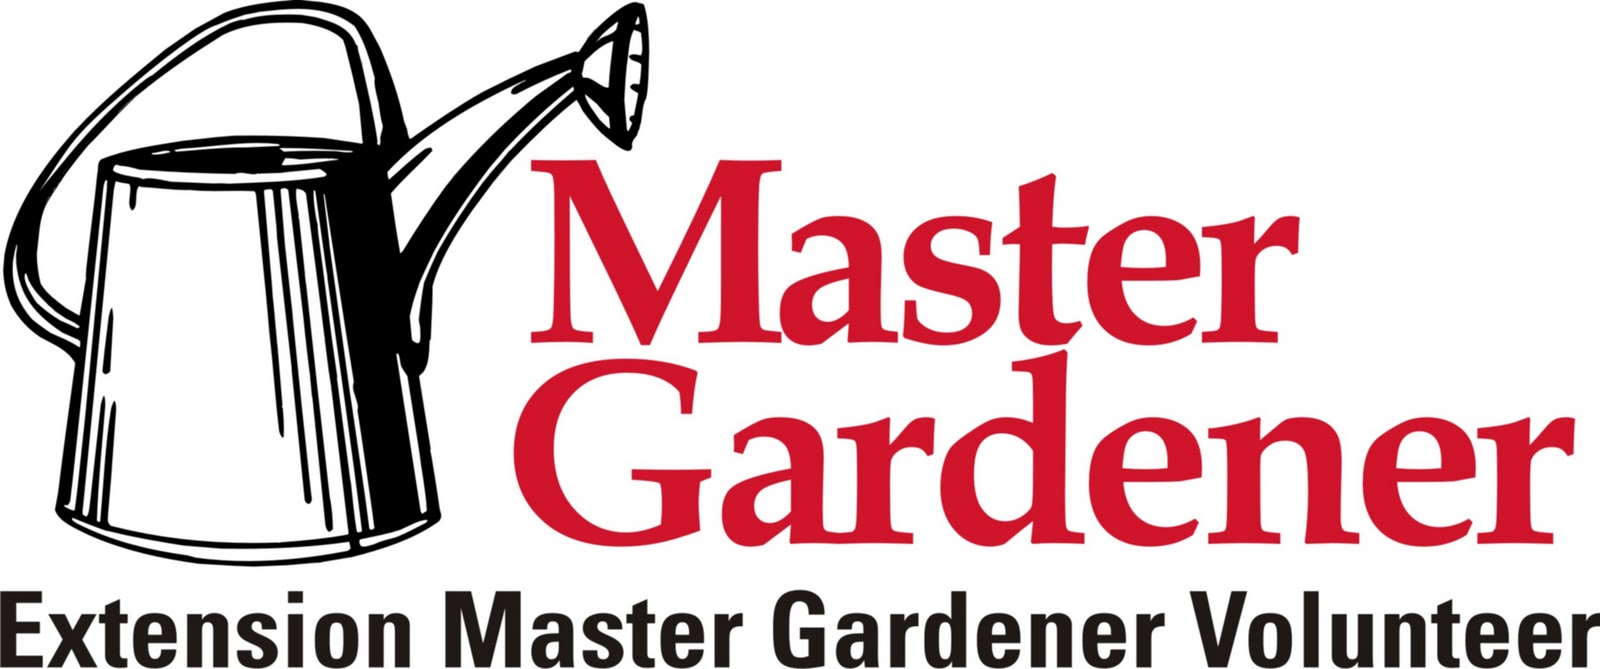 how to become a master gardener in washington